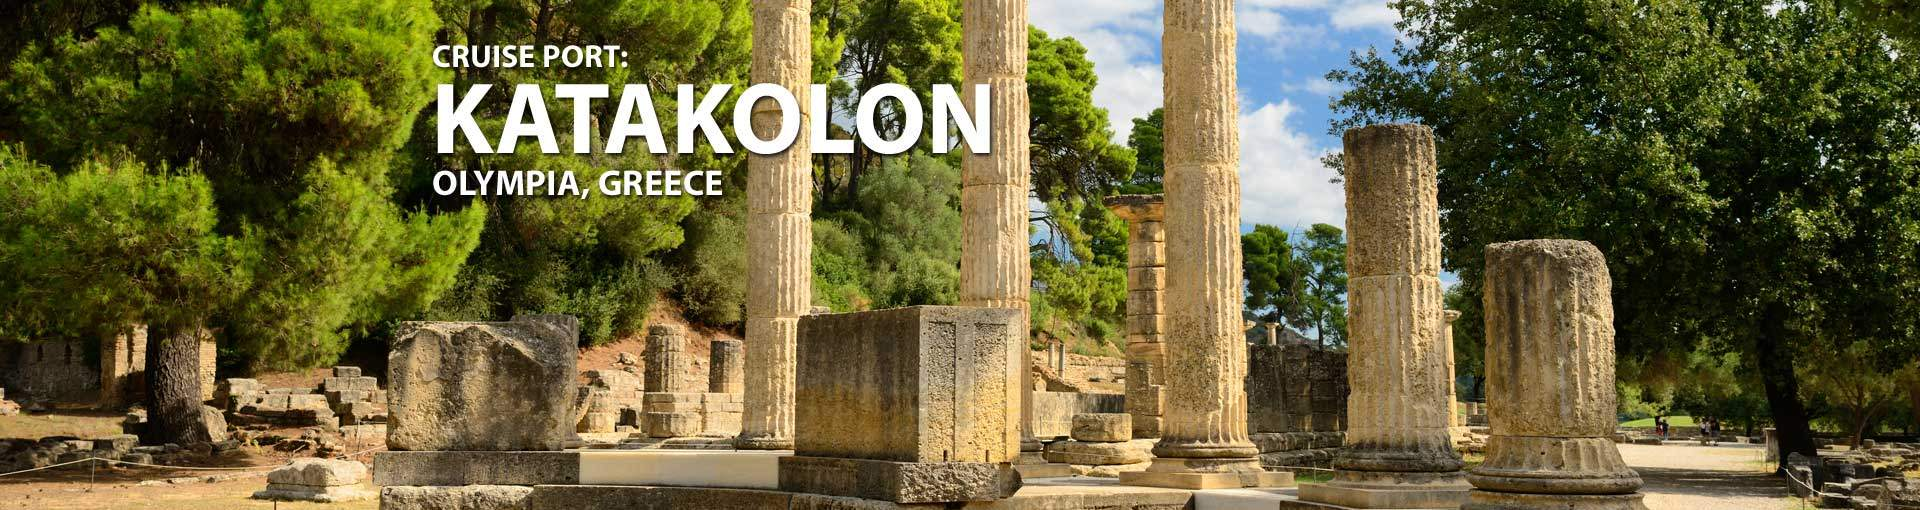 Cruises to Katakolon, Olympia, Greece